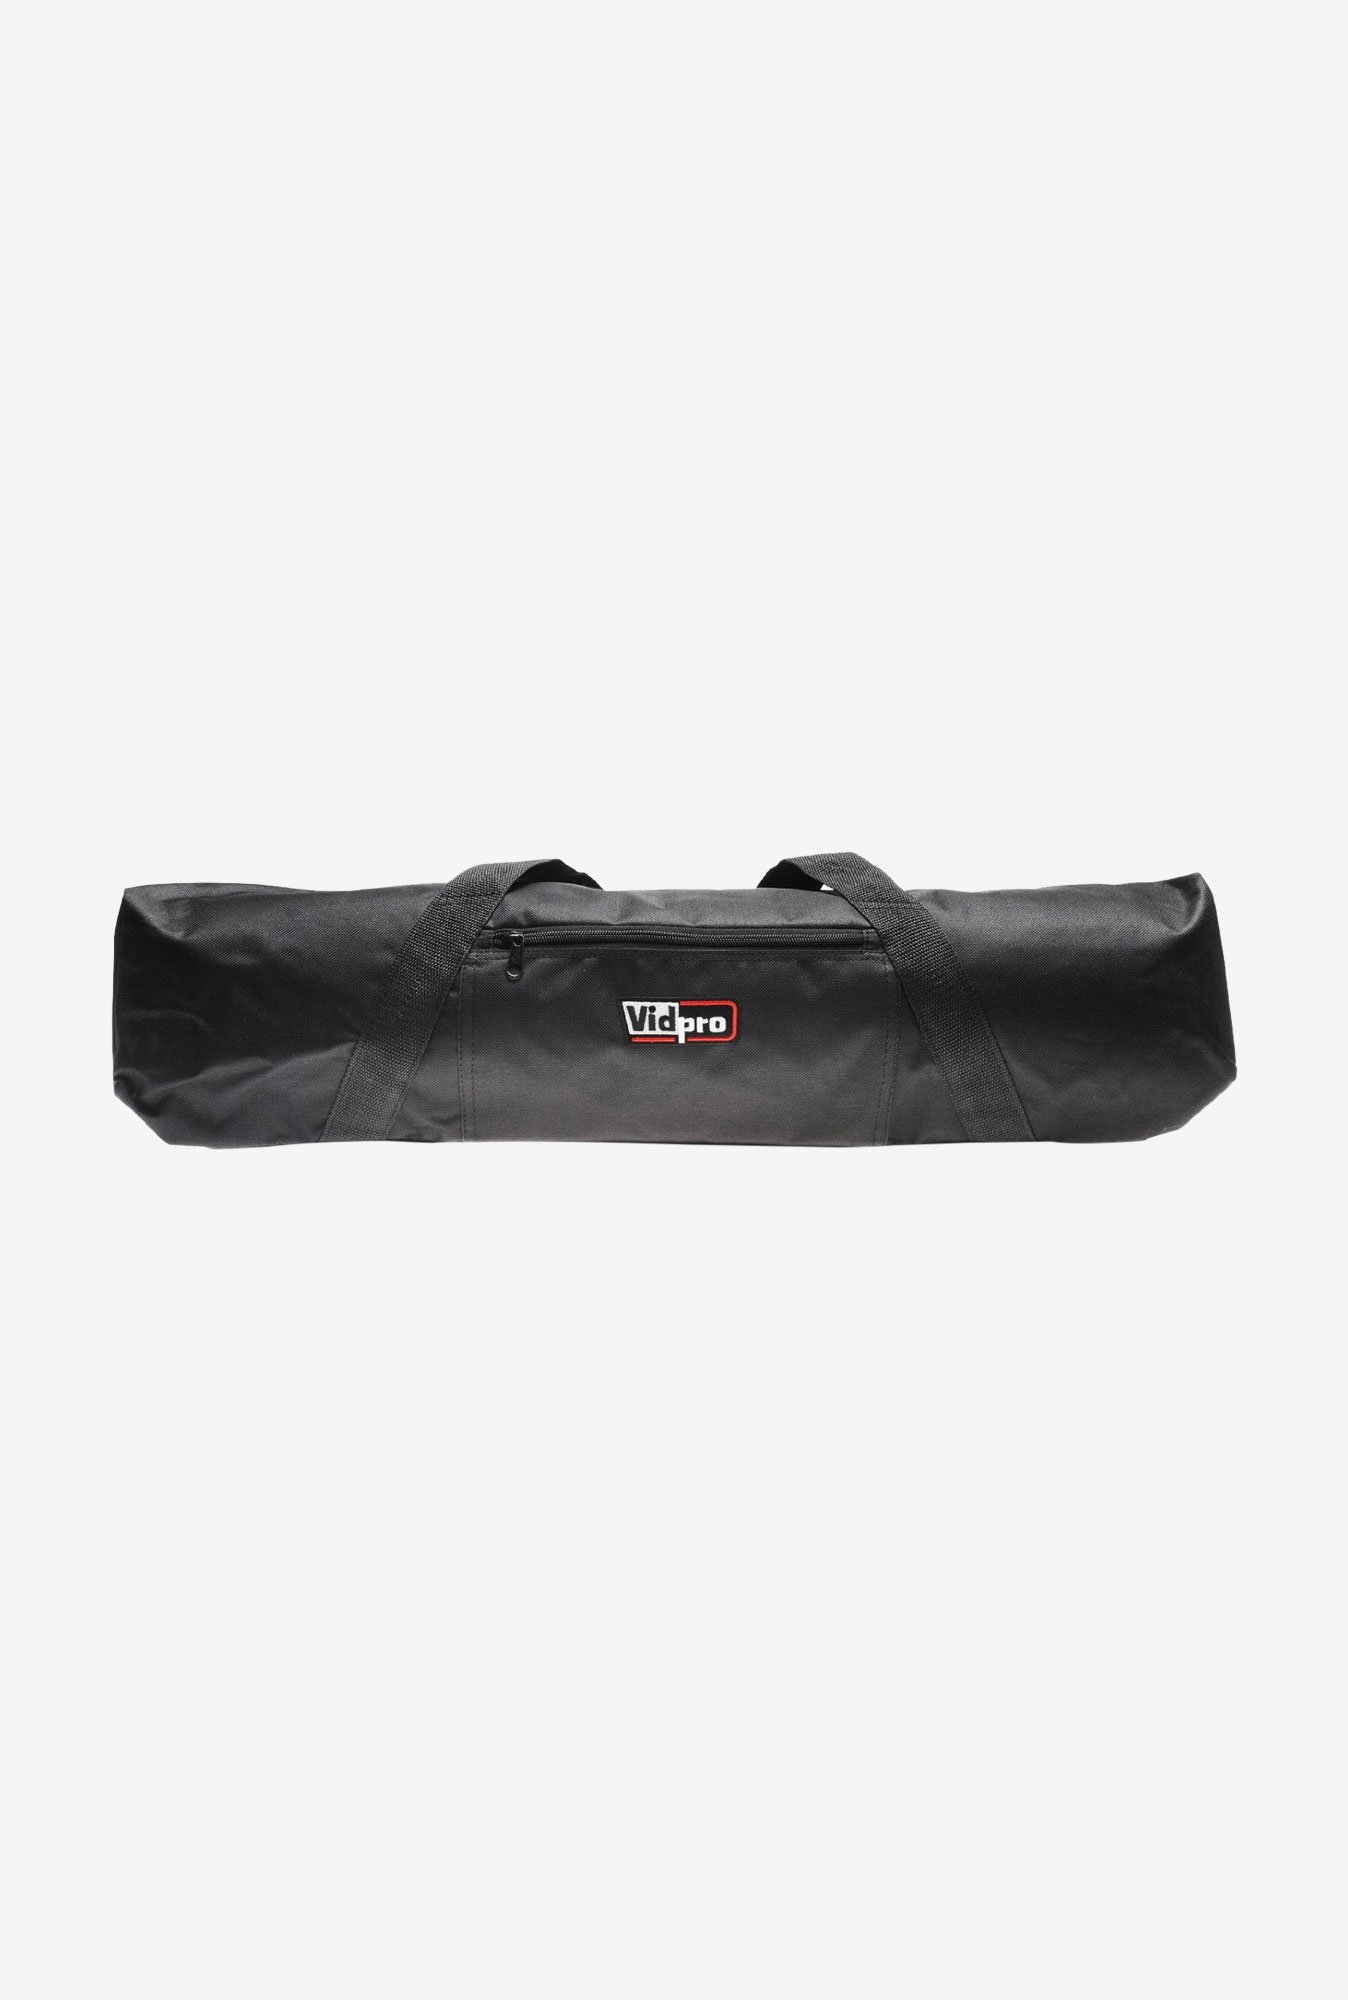 Vidpro TC-22 Tripod Case Black